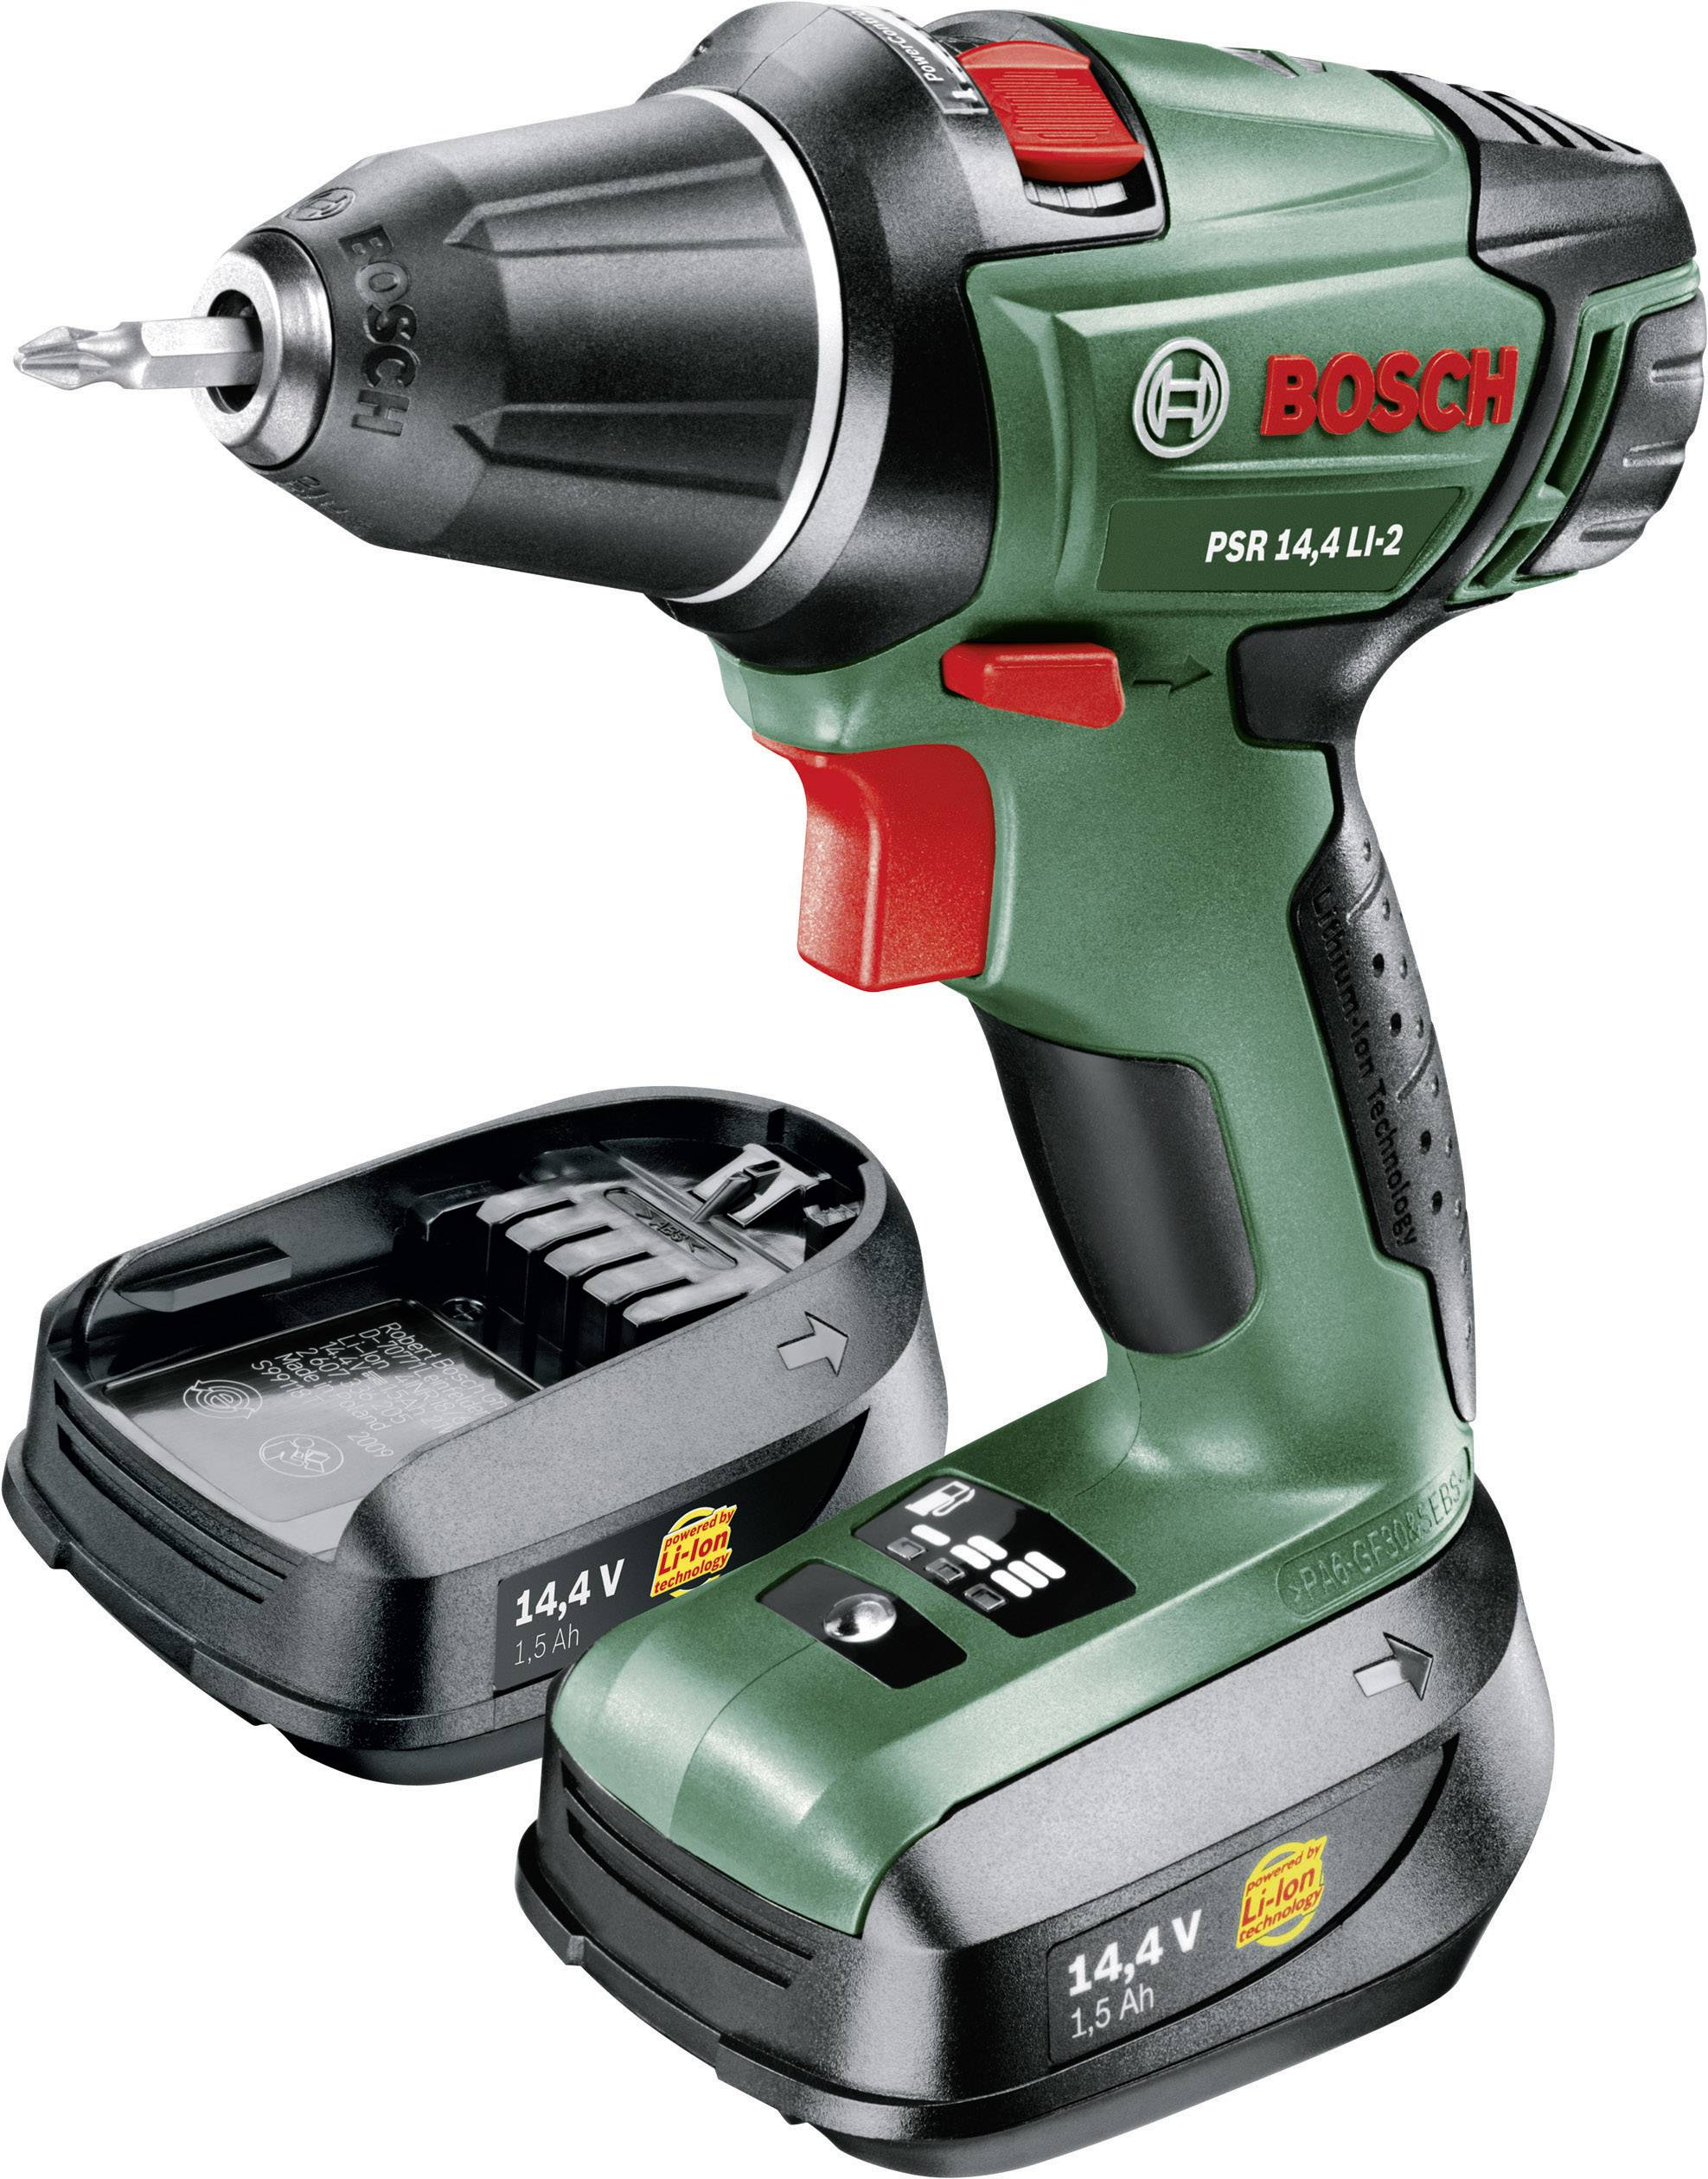 bosch psr 14 4v cordless drill drivers for windows. Black Bedroom Furniture Sets. Home Design Ideas